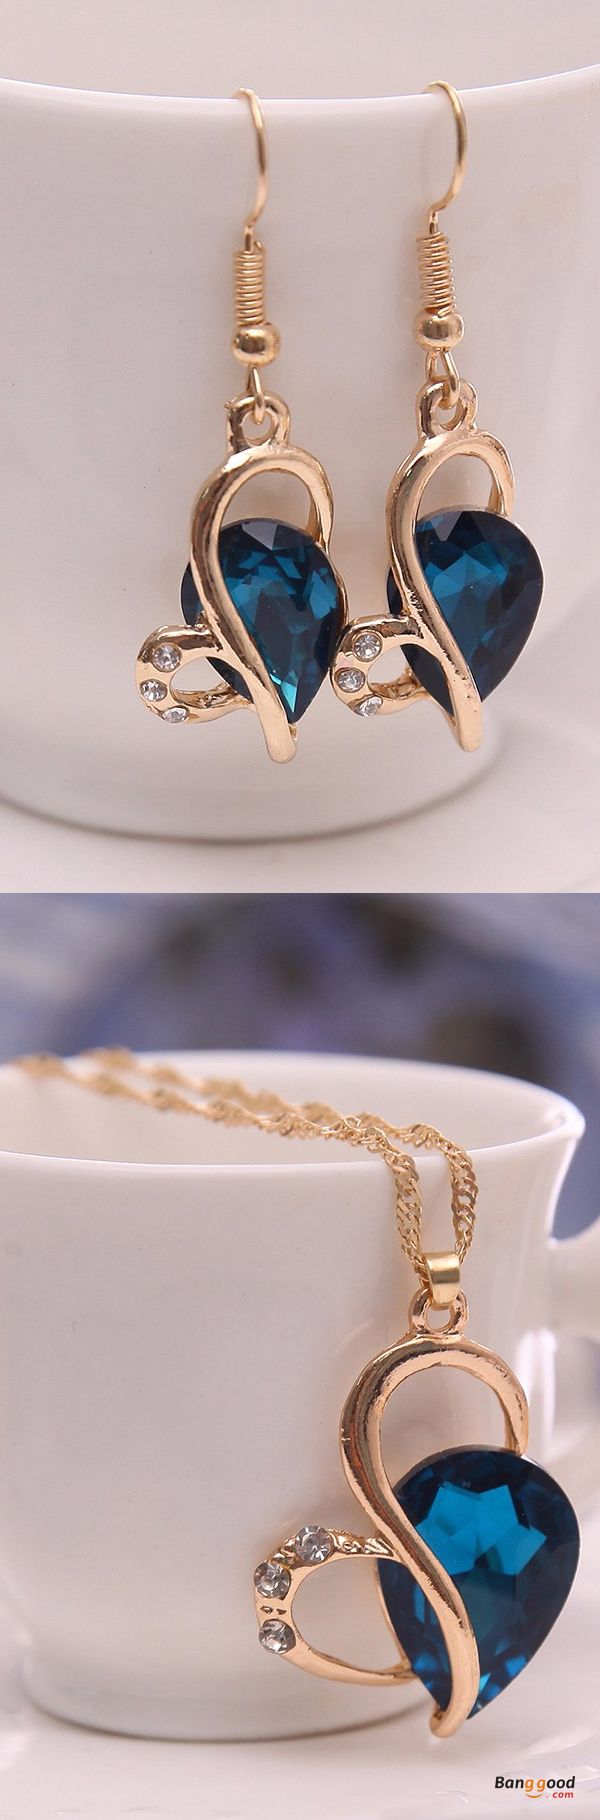 US$4.99+Free shipping. Material: Zinc Alloy, Rhinestone, Crystal. Color: Green, Purple, Blue. Fall in love with elegant and trendy style! Women's Jewelry, Women's Earrings and Necklaces, Women's Fashion, Christmas Accessories.